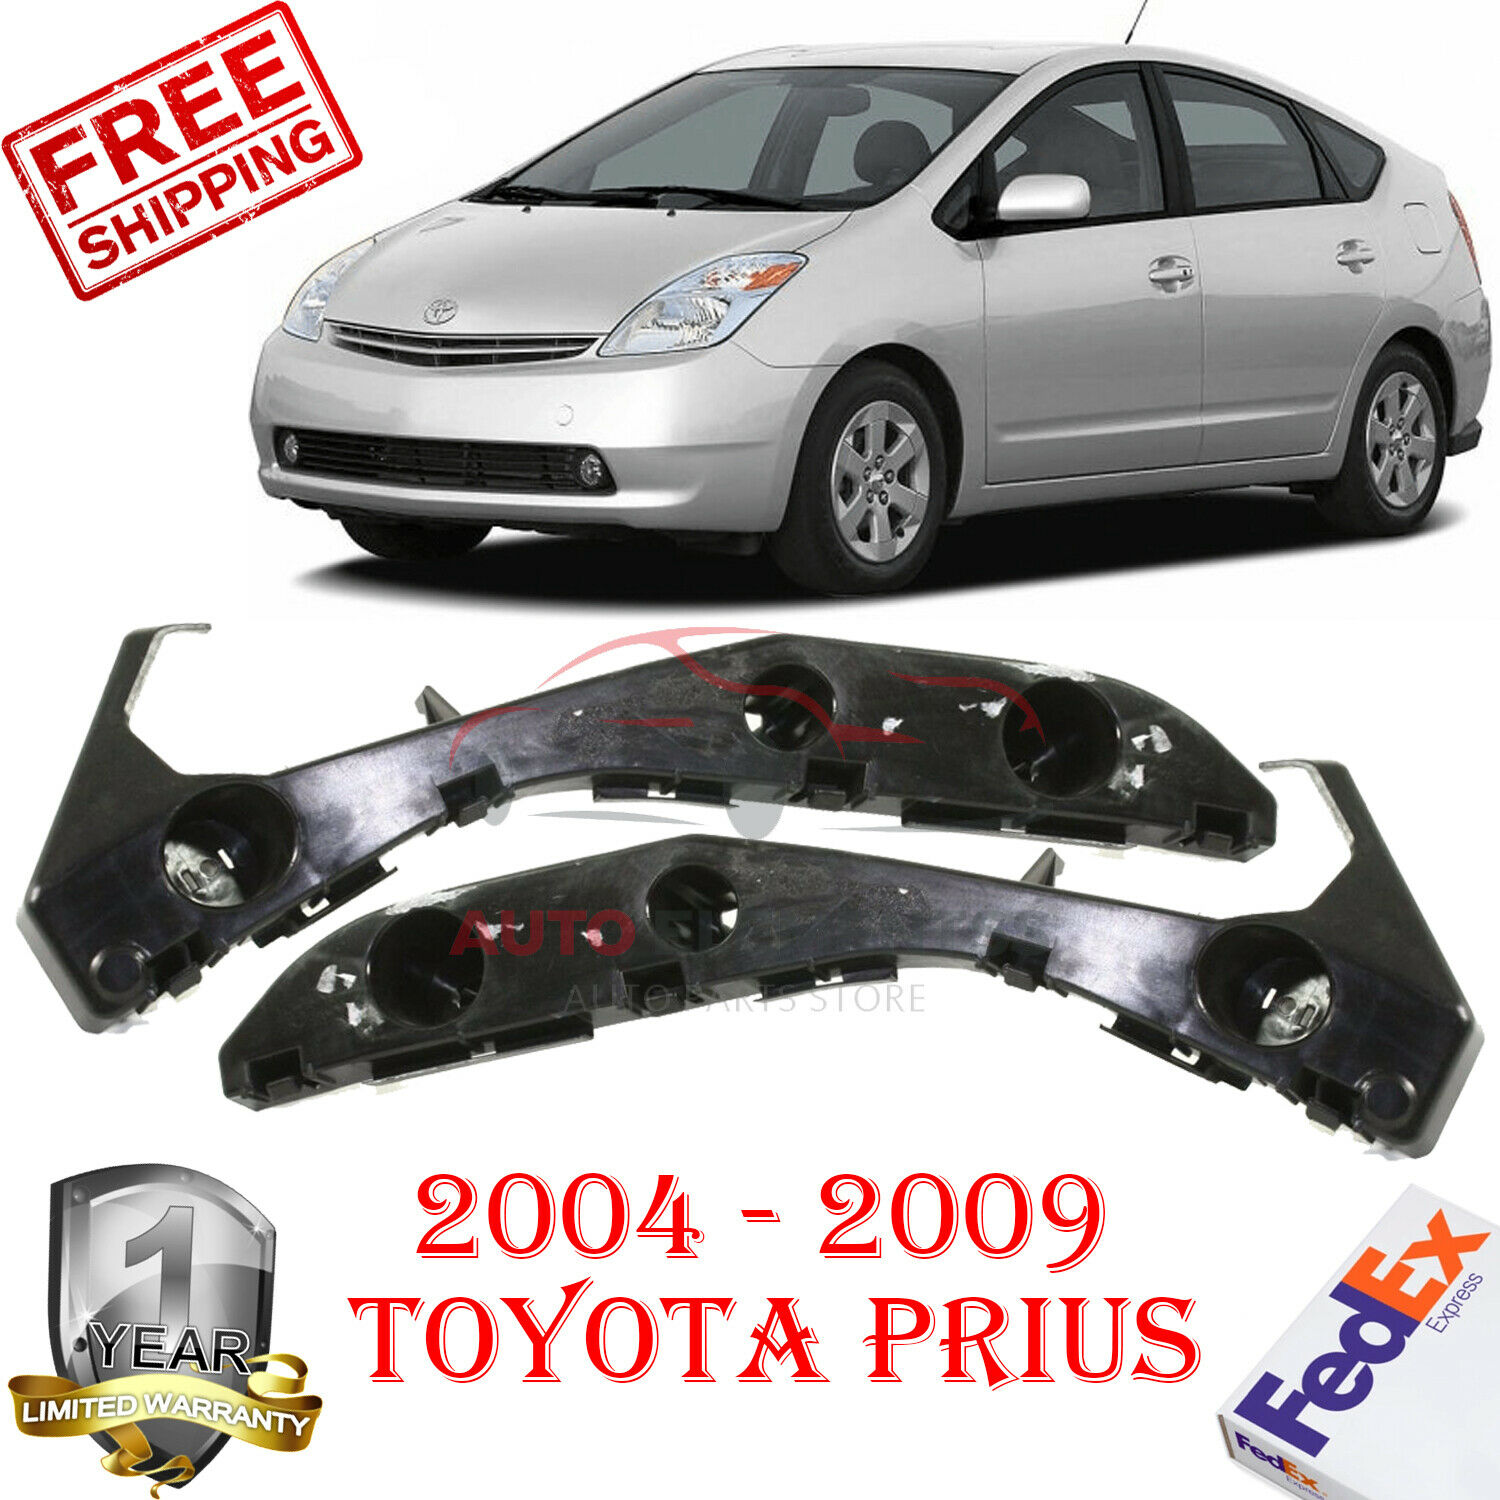 New Front Passenger Side Bumper Bracket For Toyota Prius 2004-2009 TO1043109